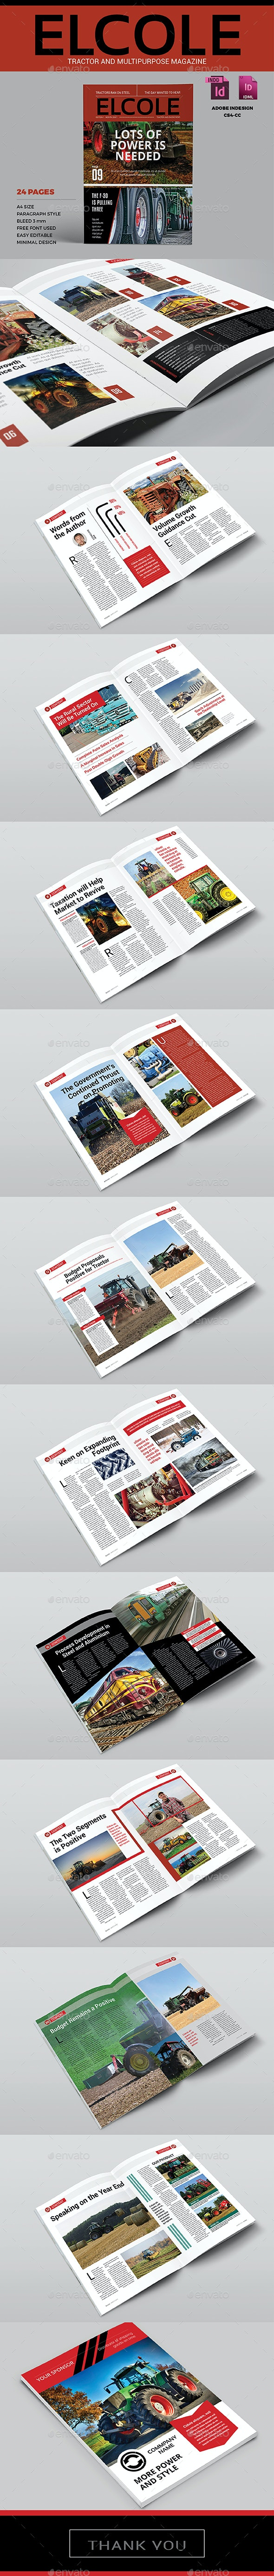 Tractor and Multipurpose Magazine Template - Elcole - Magazines Print Templates